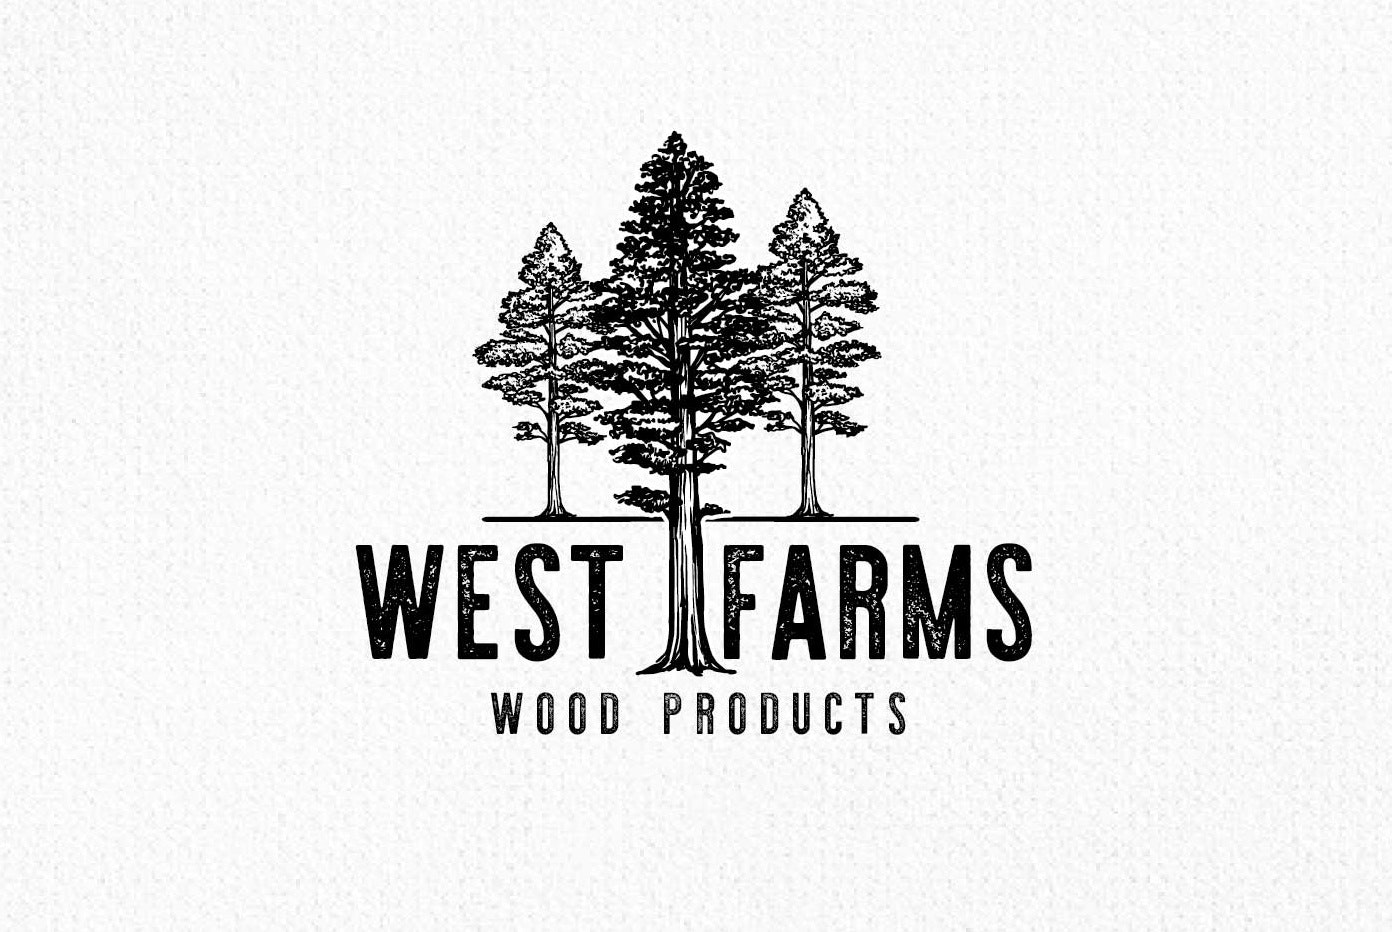 West Farms